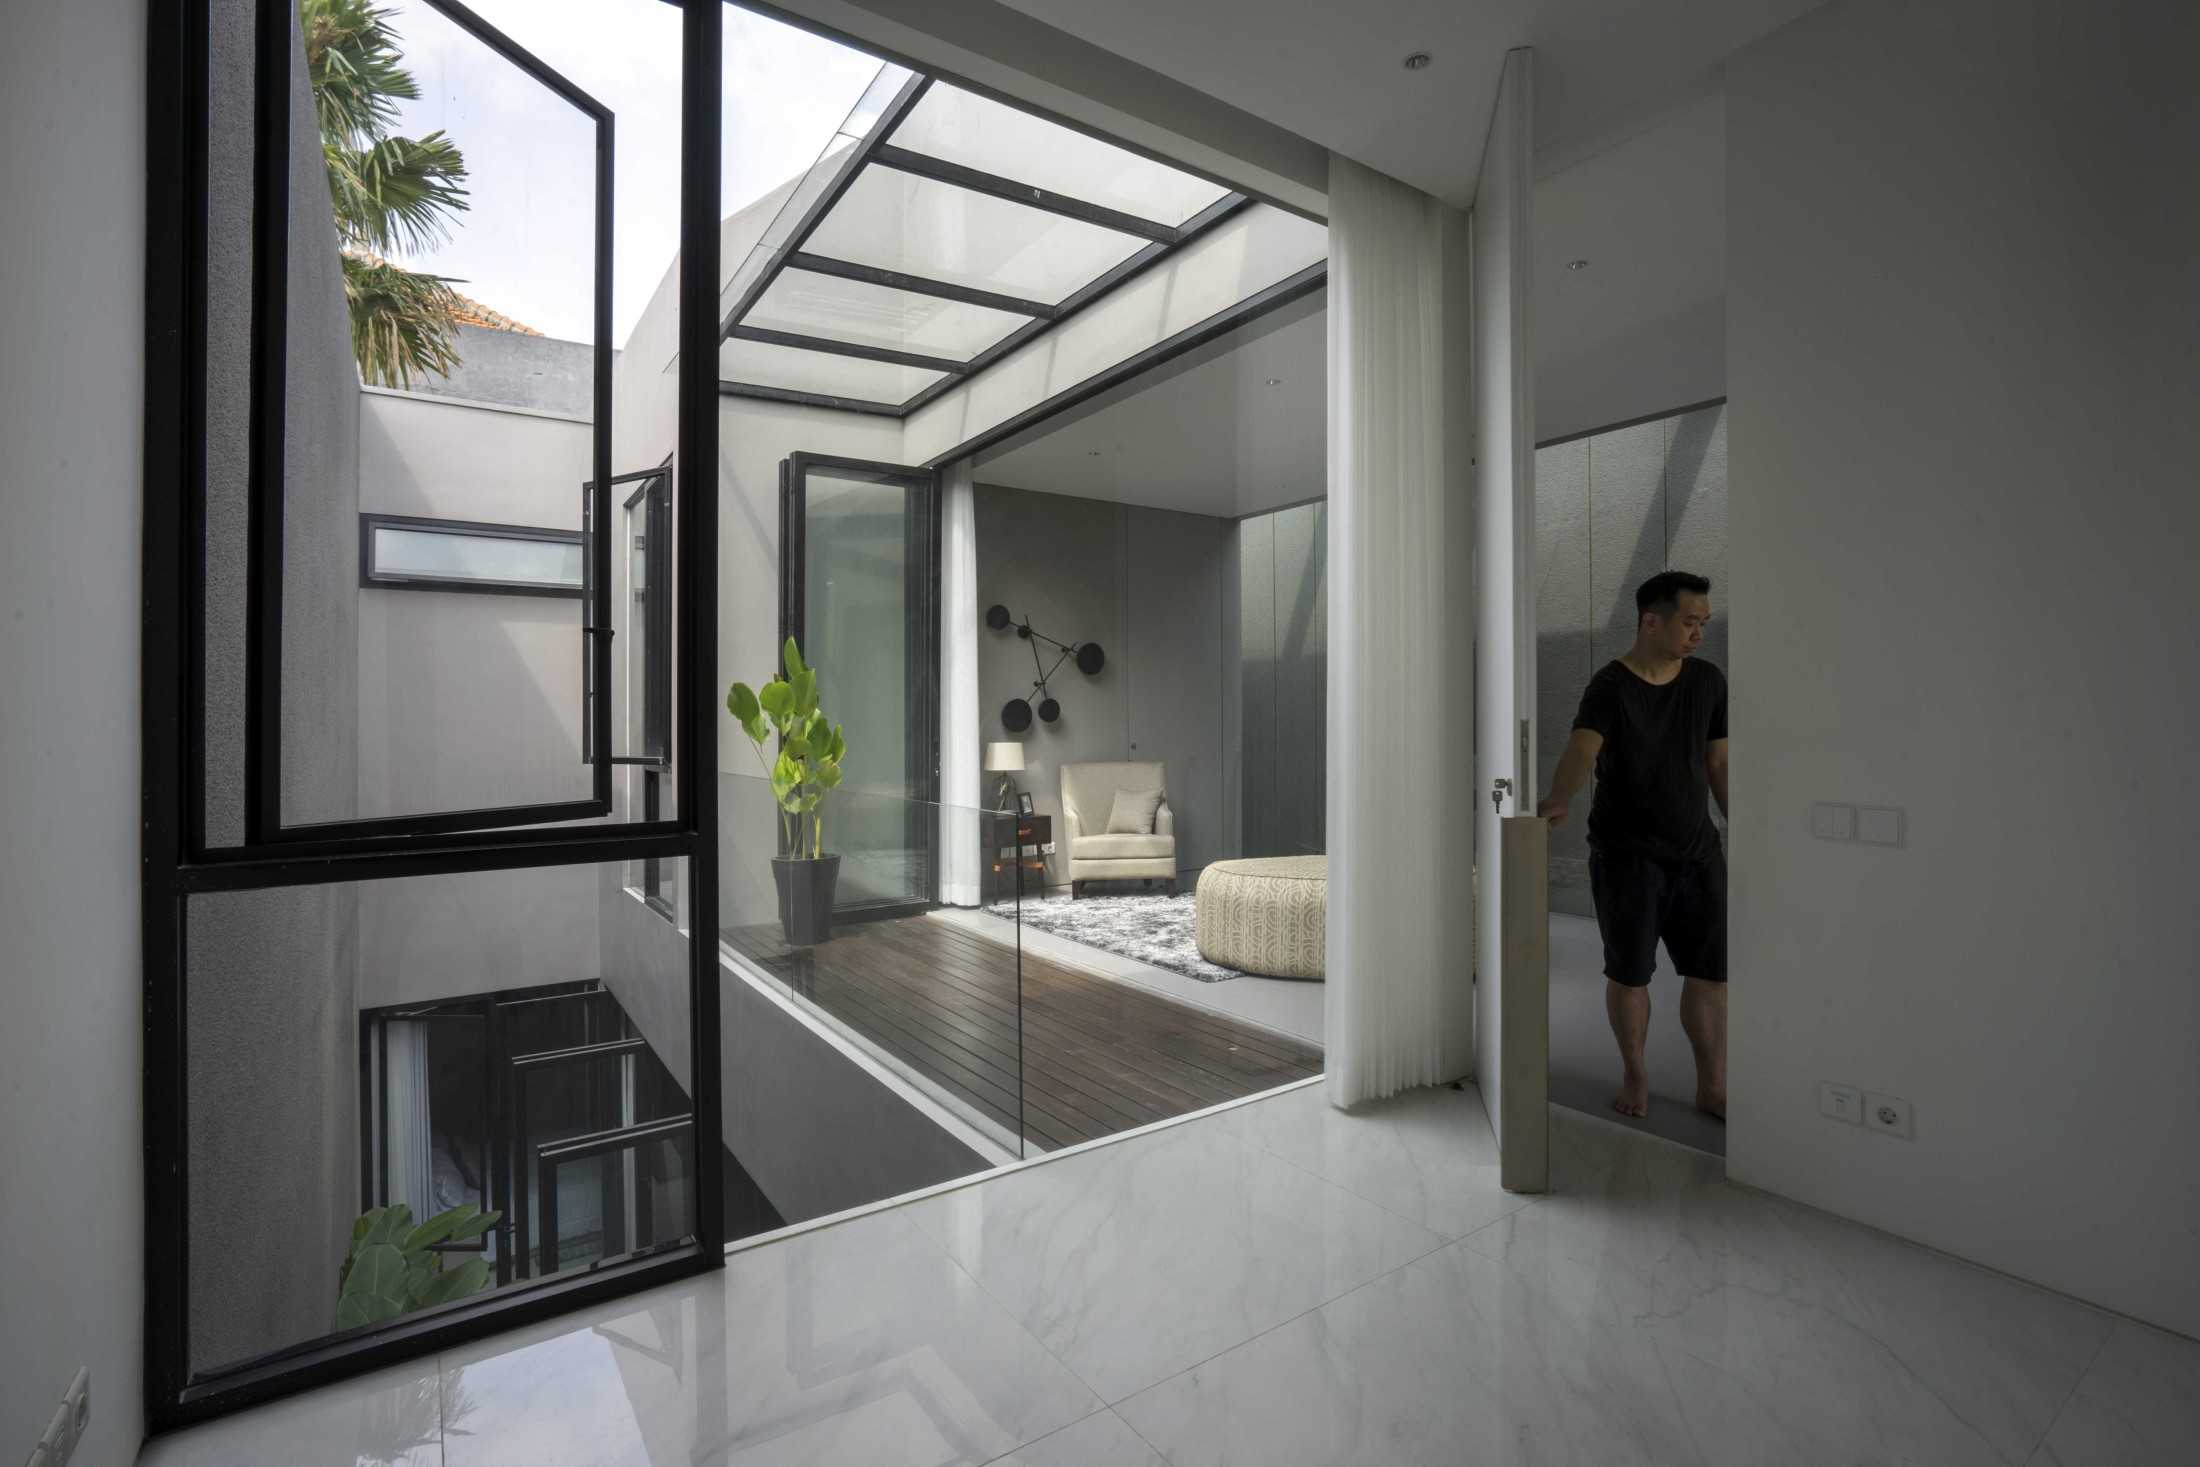 Simple Projects Architecture 'hhh' House Surabaya, Kota Sby, Jawa Timur, Indonesia  Simple-Projects-Architecture-Hhh-House  75030